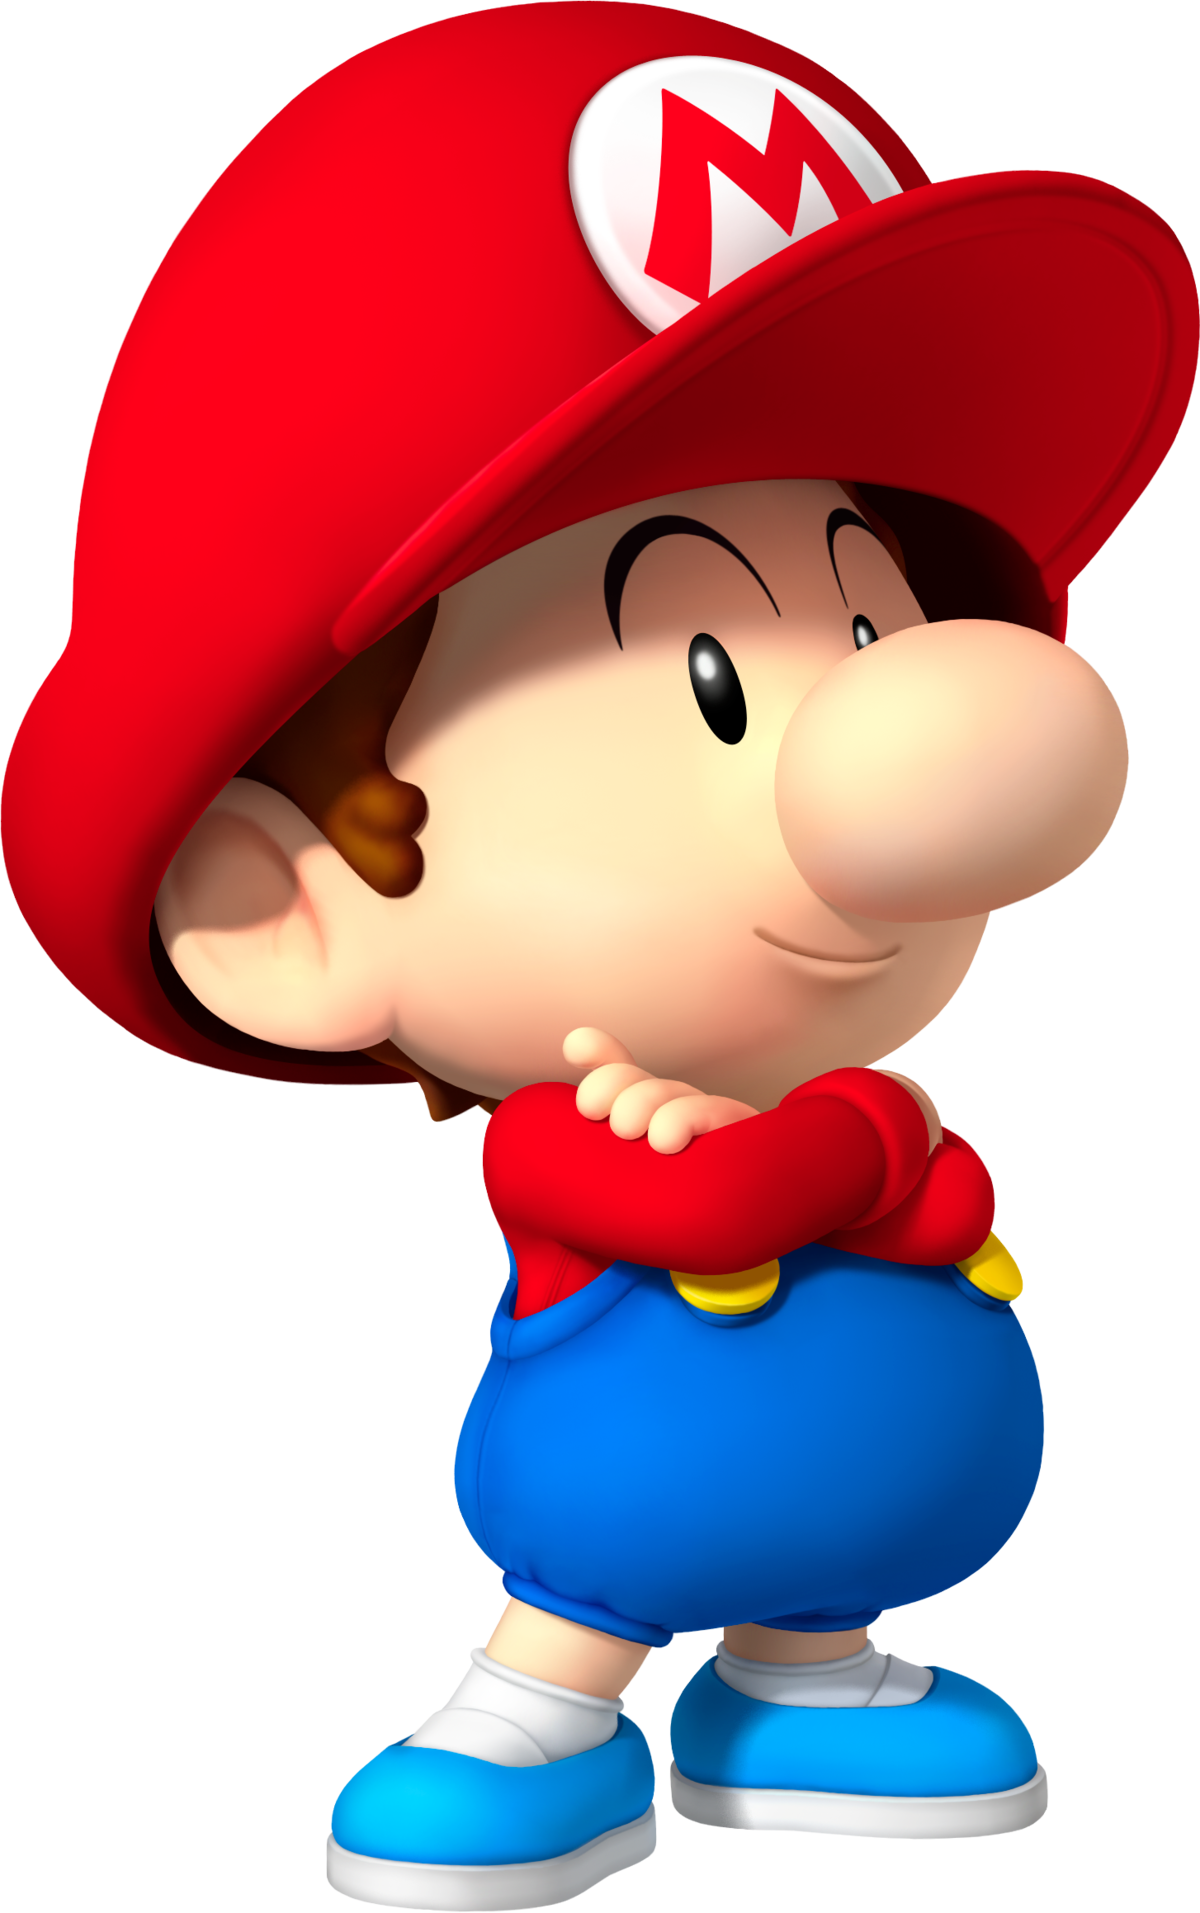 Baby Mario Super Mario Wiki The Mario Encyclopedia